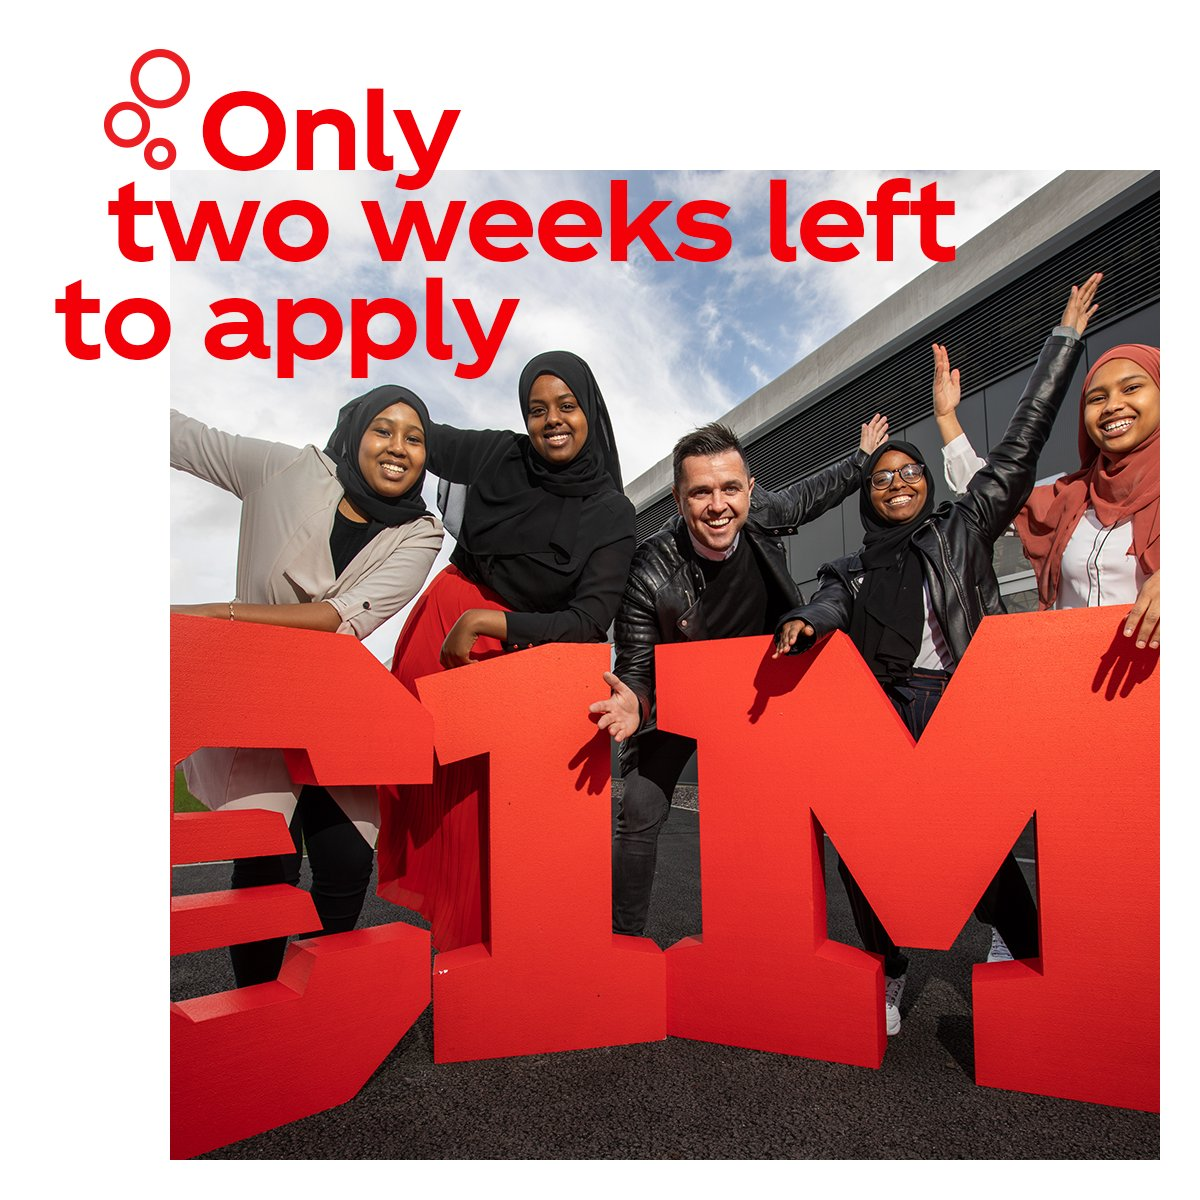 Just 14 days left to apply for the 2020 Coca-Cola Thank You Fund.   We've awarded over €1,000,000 to Irish non-profits since the fund began – and this year we have a further €50,000 in grants for local community groups struggling due to COVID-19. https://t.co/zxESreWLeD https://t.co/EweOZUNToG